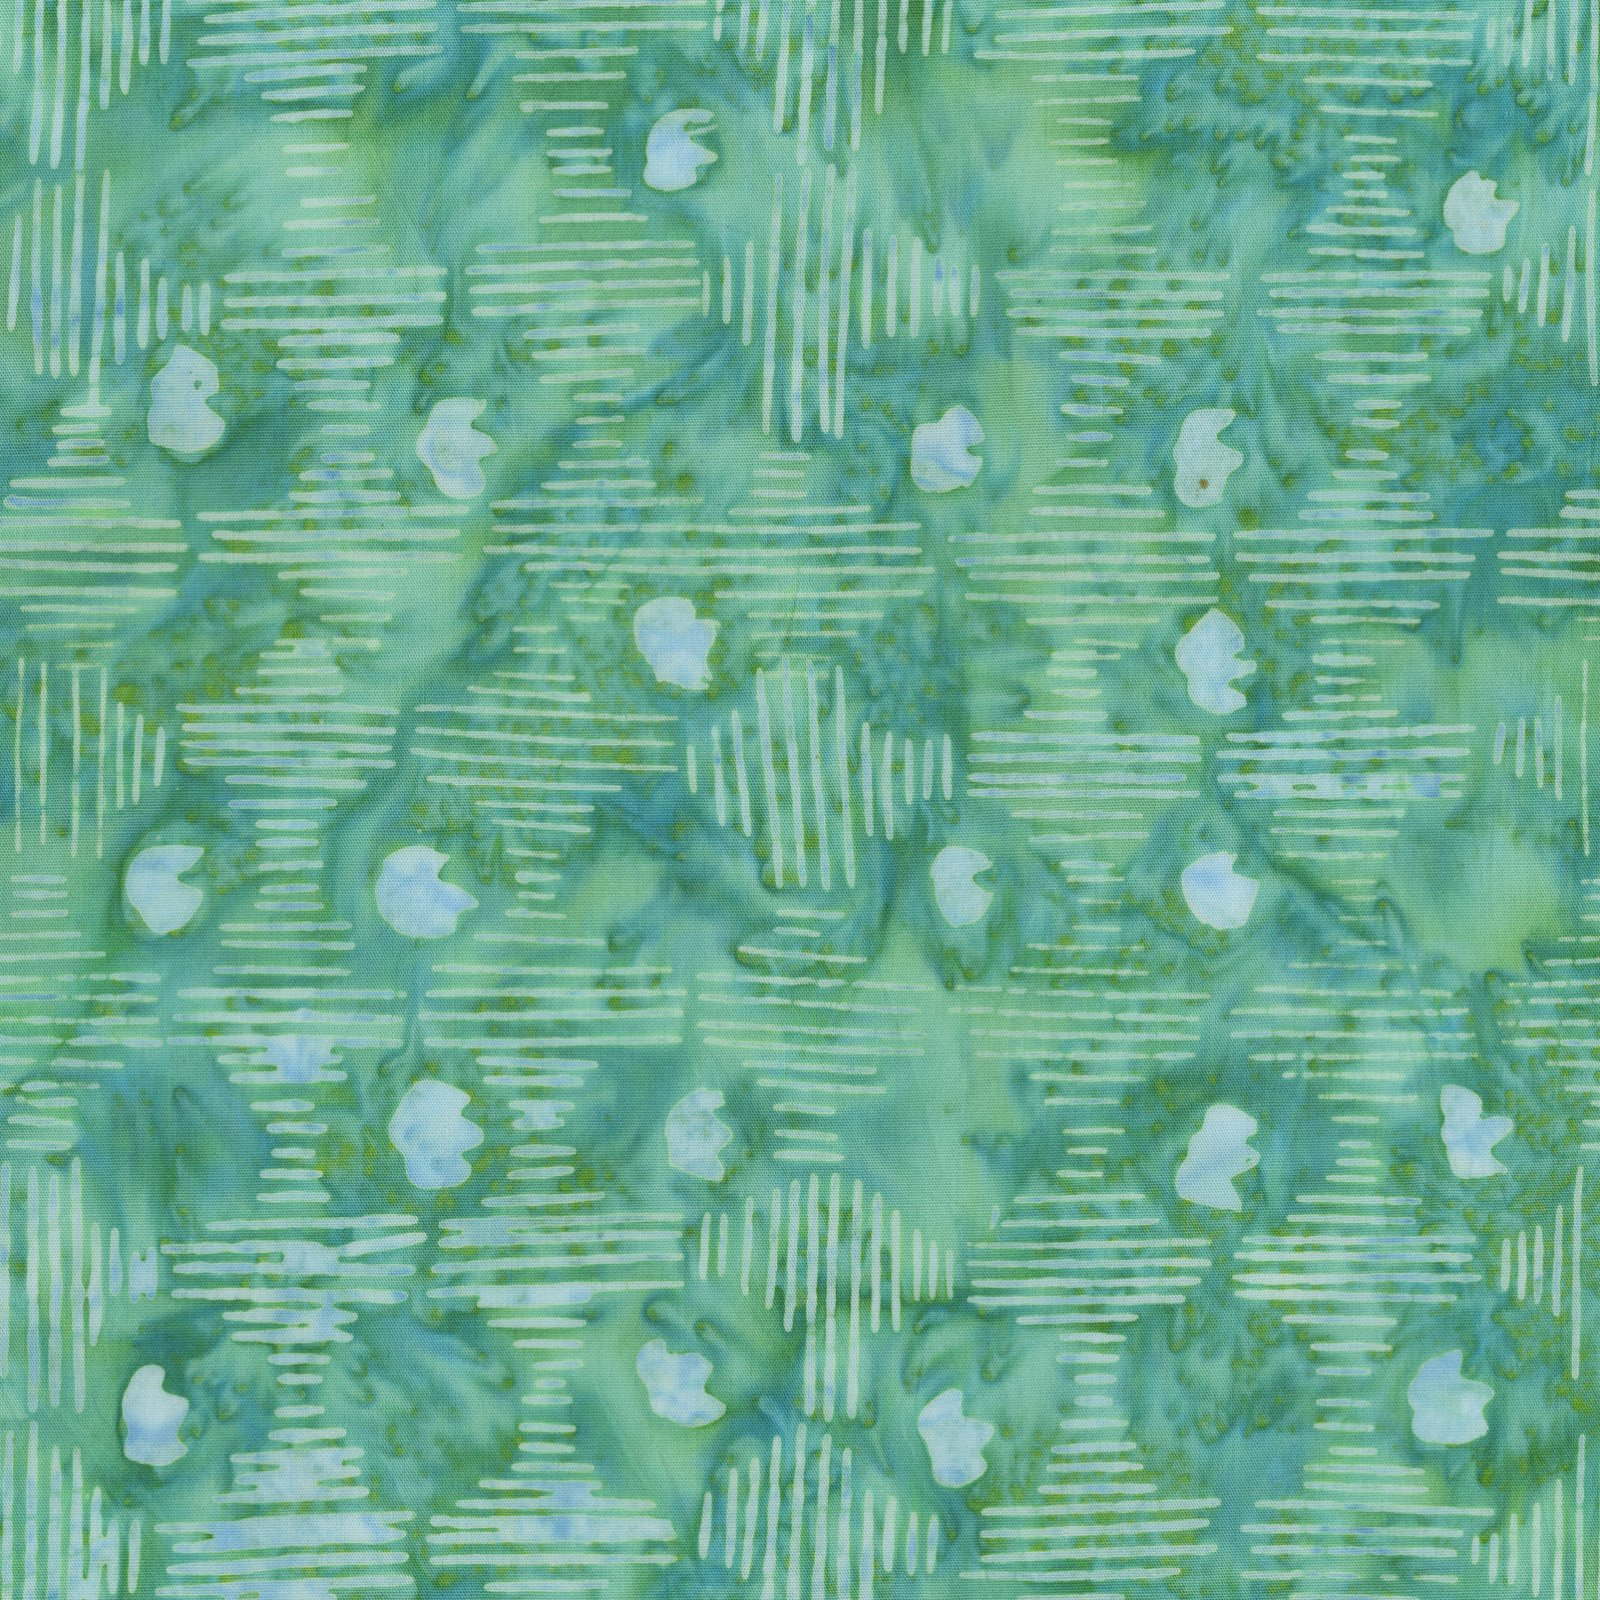 708Q-2 Island Home by Natalie Barnes of Beyond the Reef for Anthology Fabrics